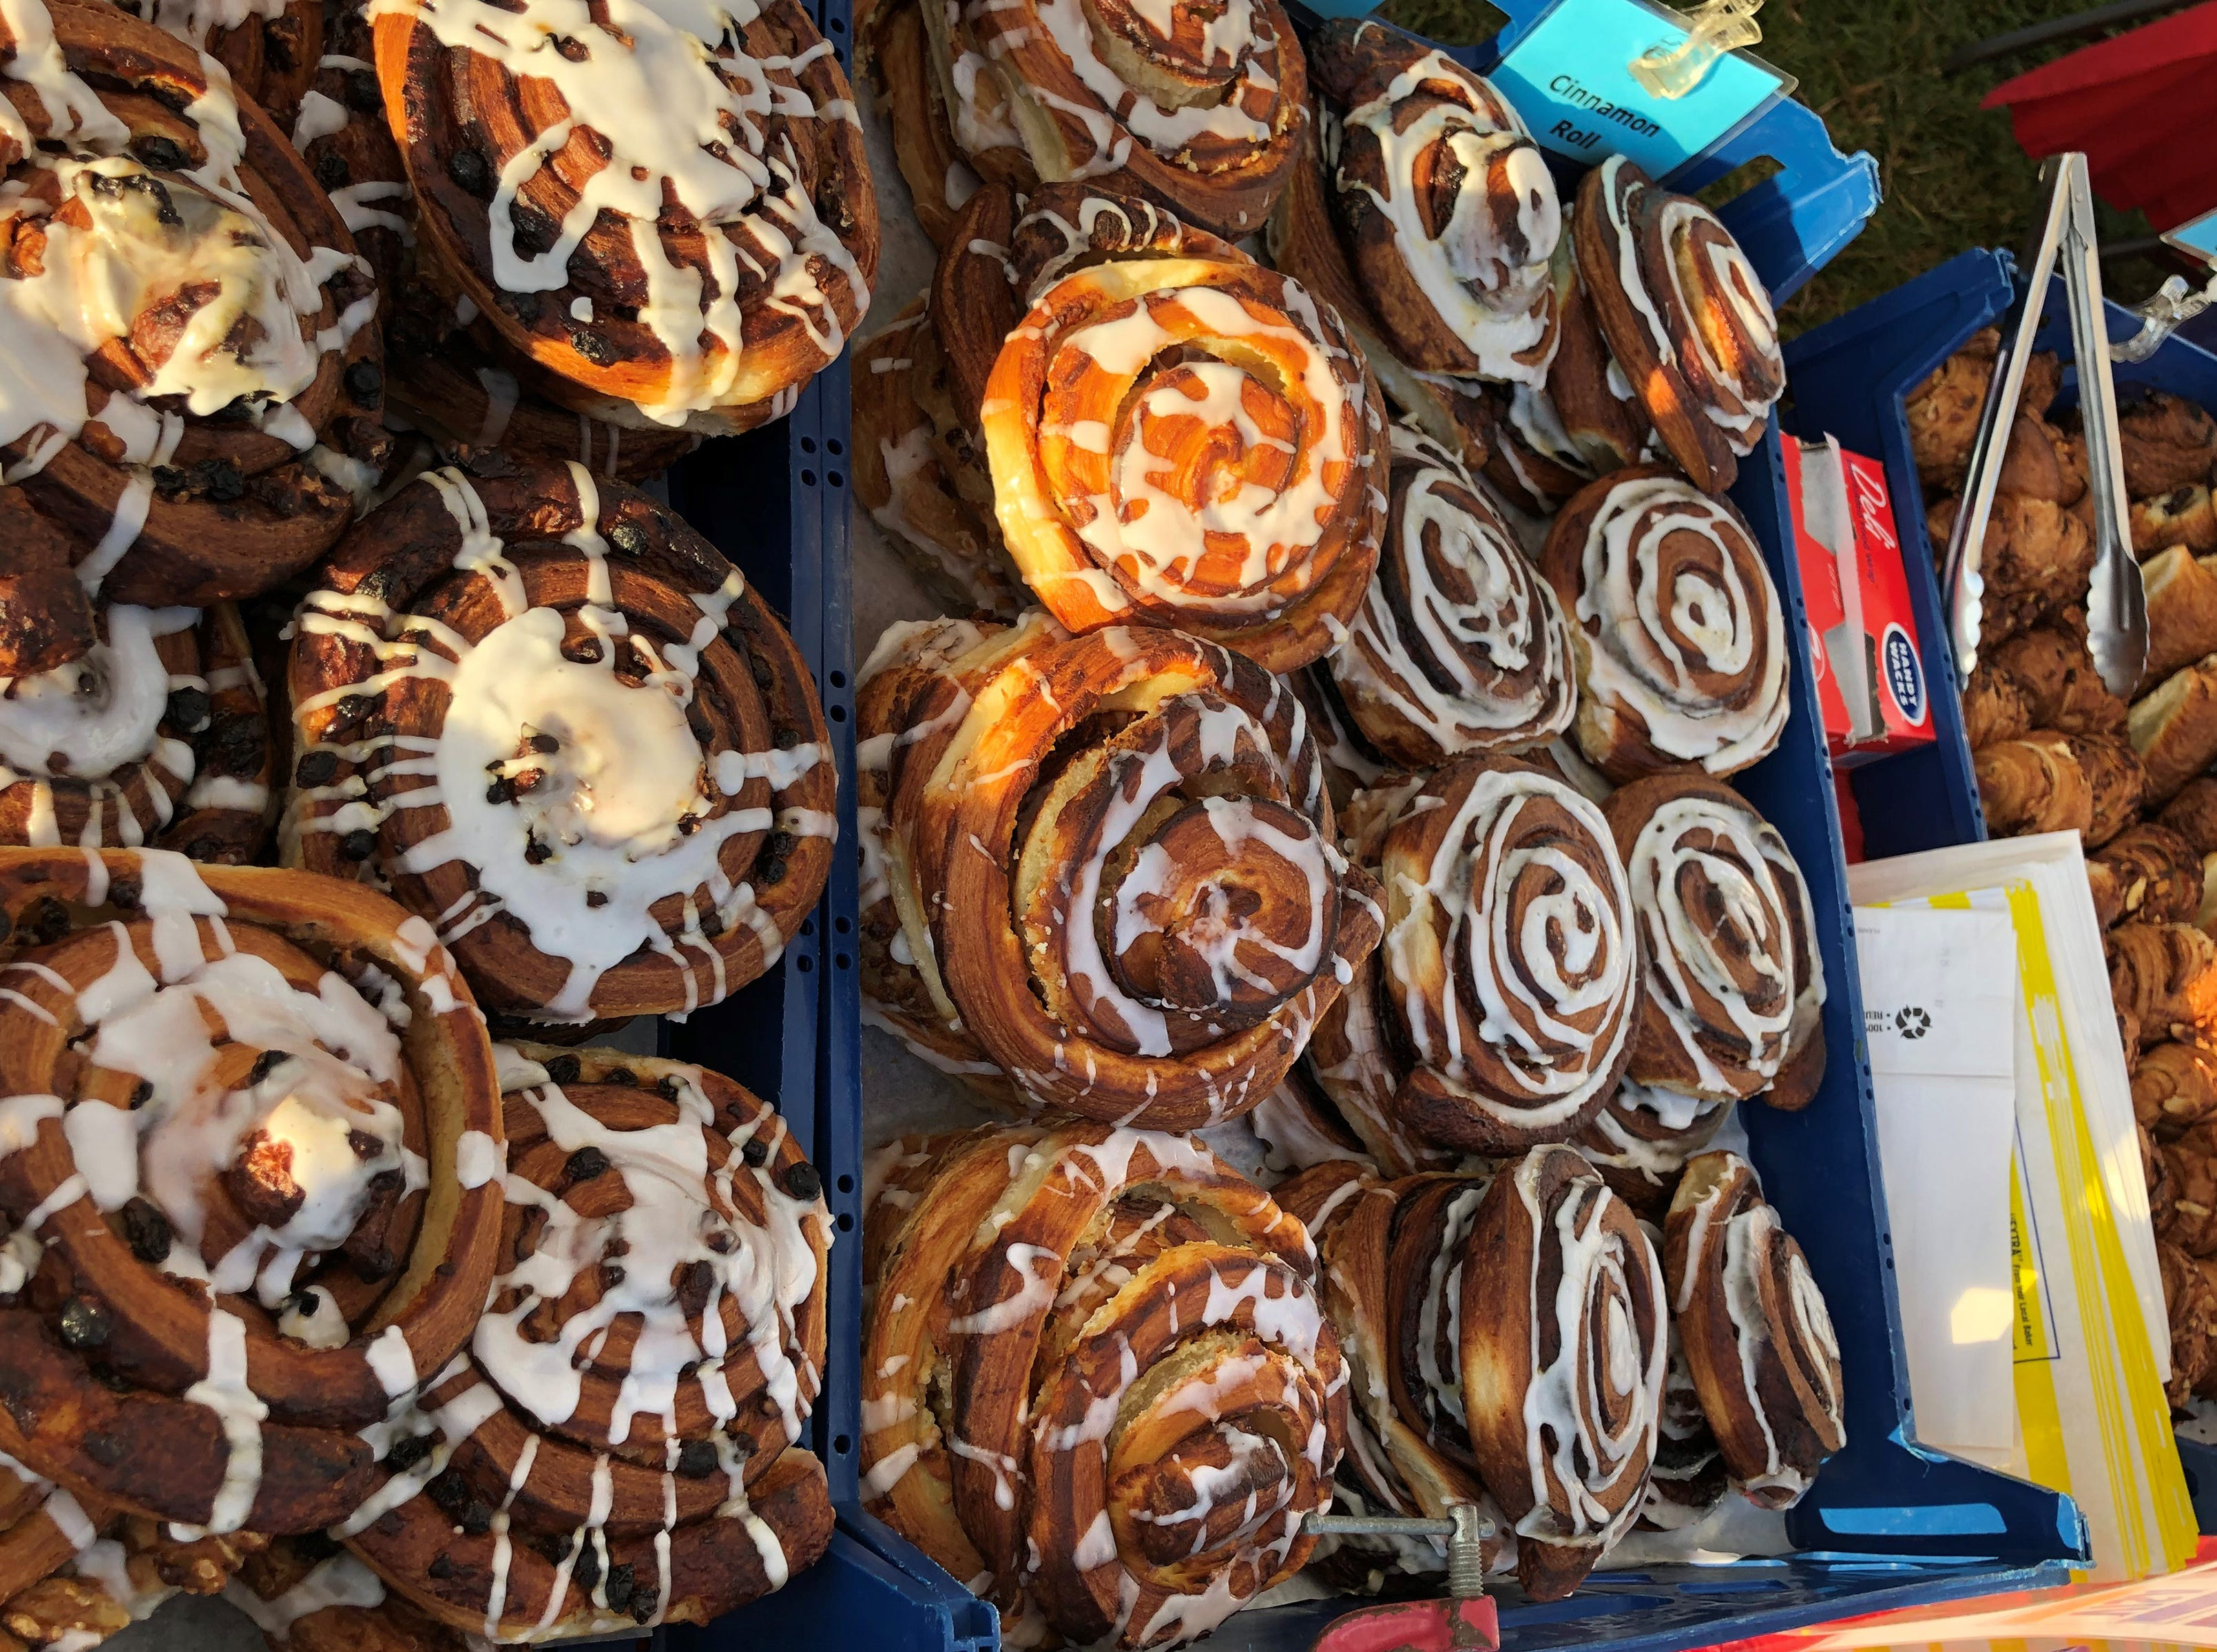 Fresh baked delights at JC's Daily Bread booth. Opening day for the Marco Island Farmers Market at Veterans Community Park was Wednesday, Nov. 14, 2018.